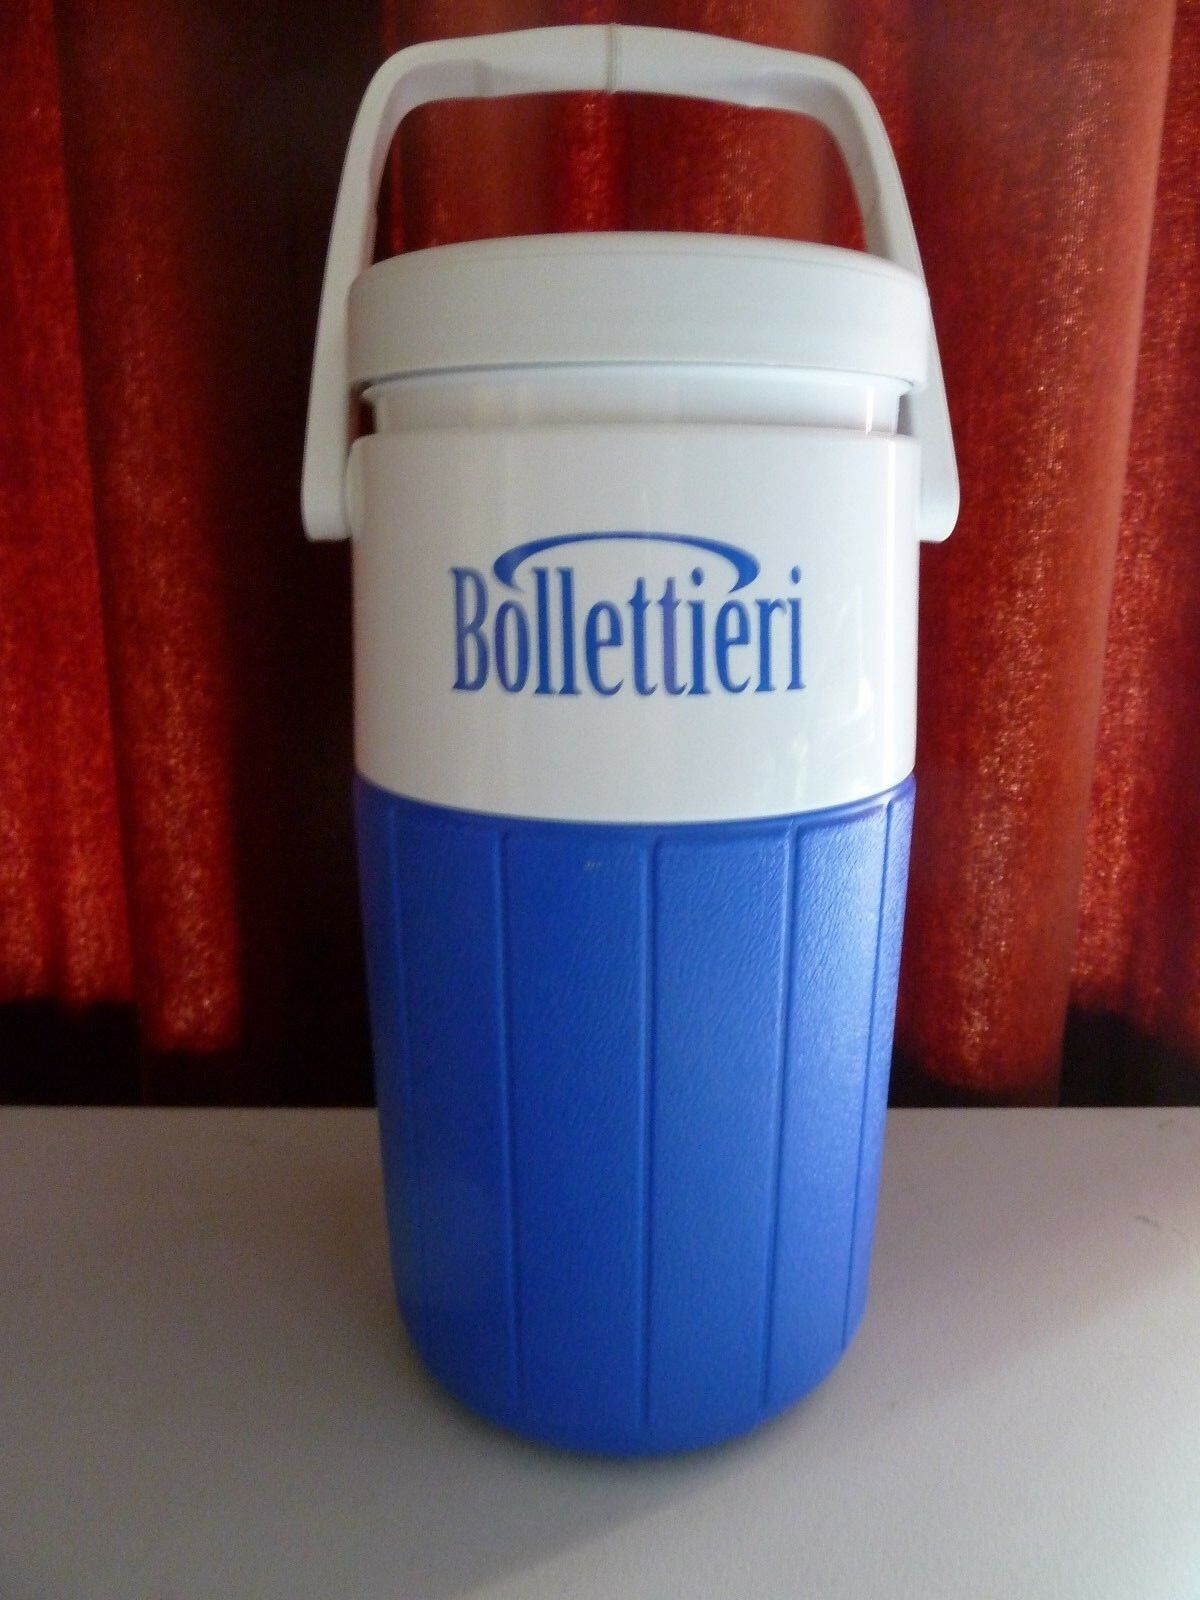 BOLLETTIERI TENNIS COLEMAN 5590 POLYLITE DRINKS CONTAINER SPOUT COLLECTIBLE